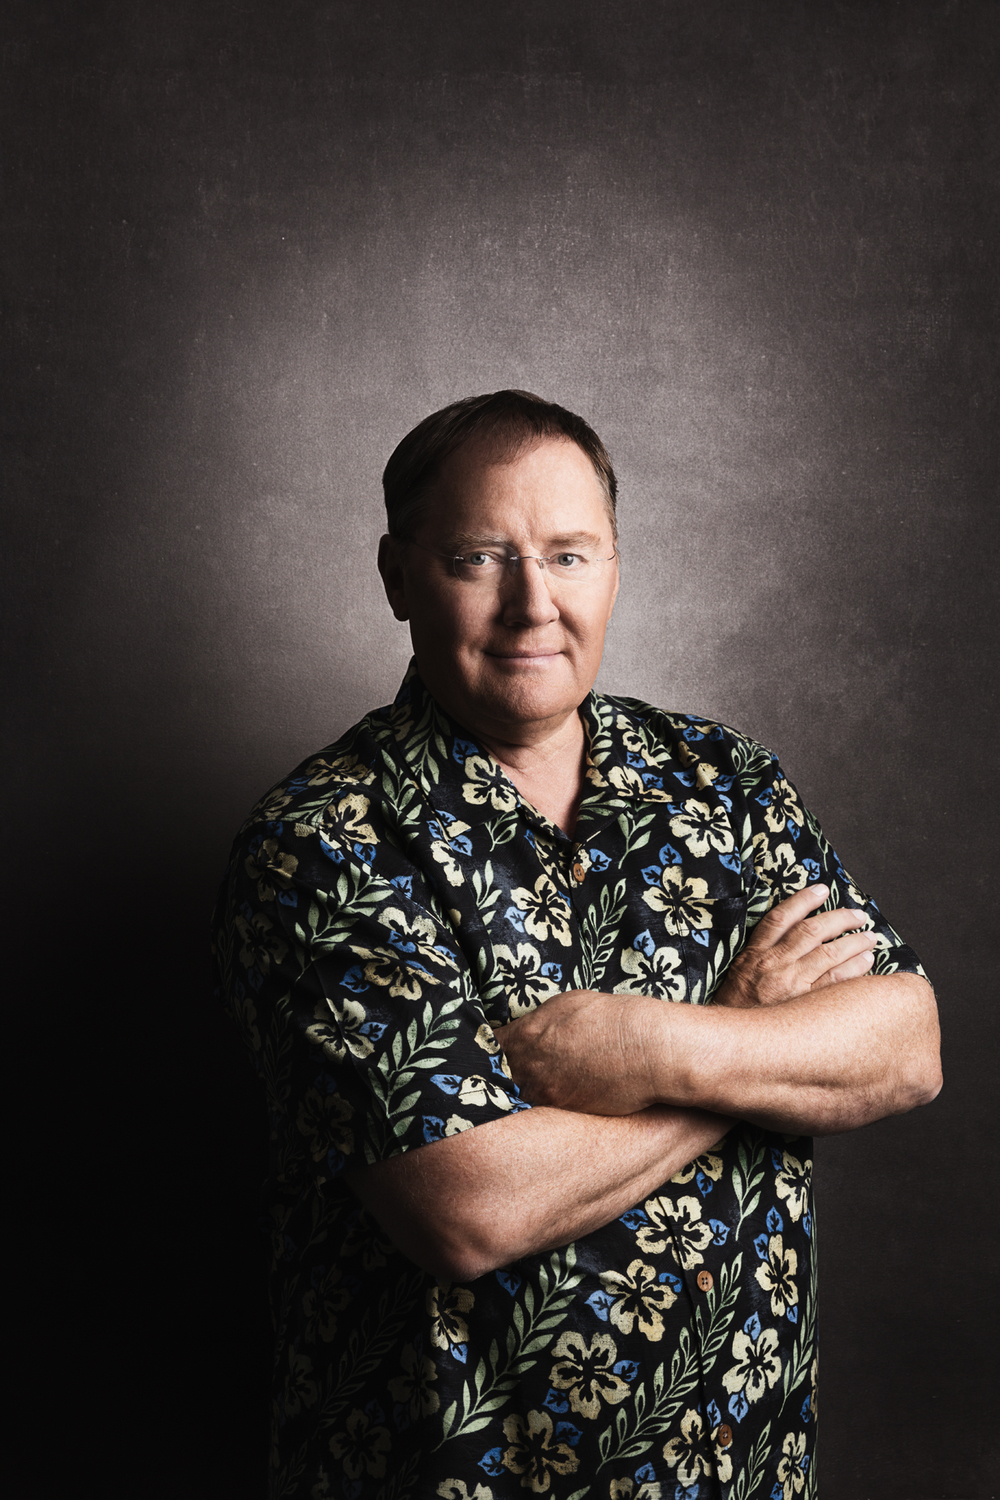 John Lasseter for WIRED